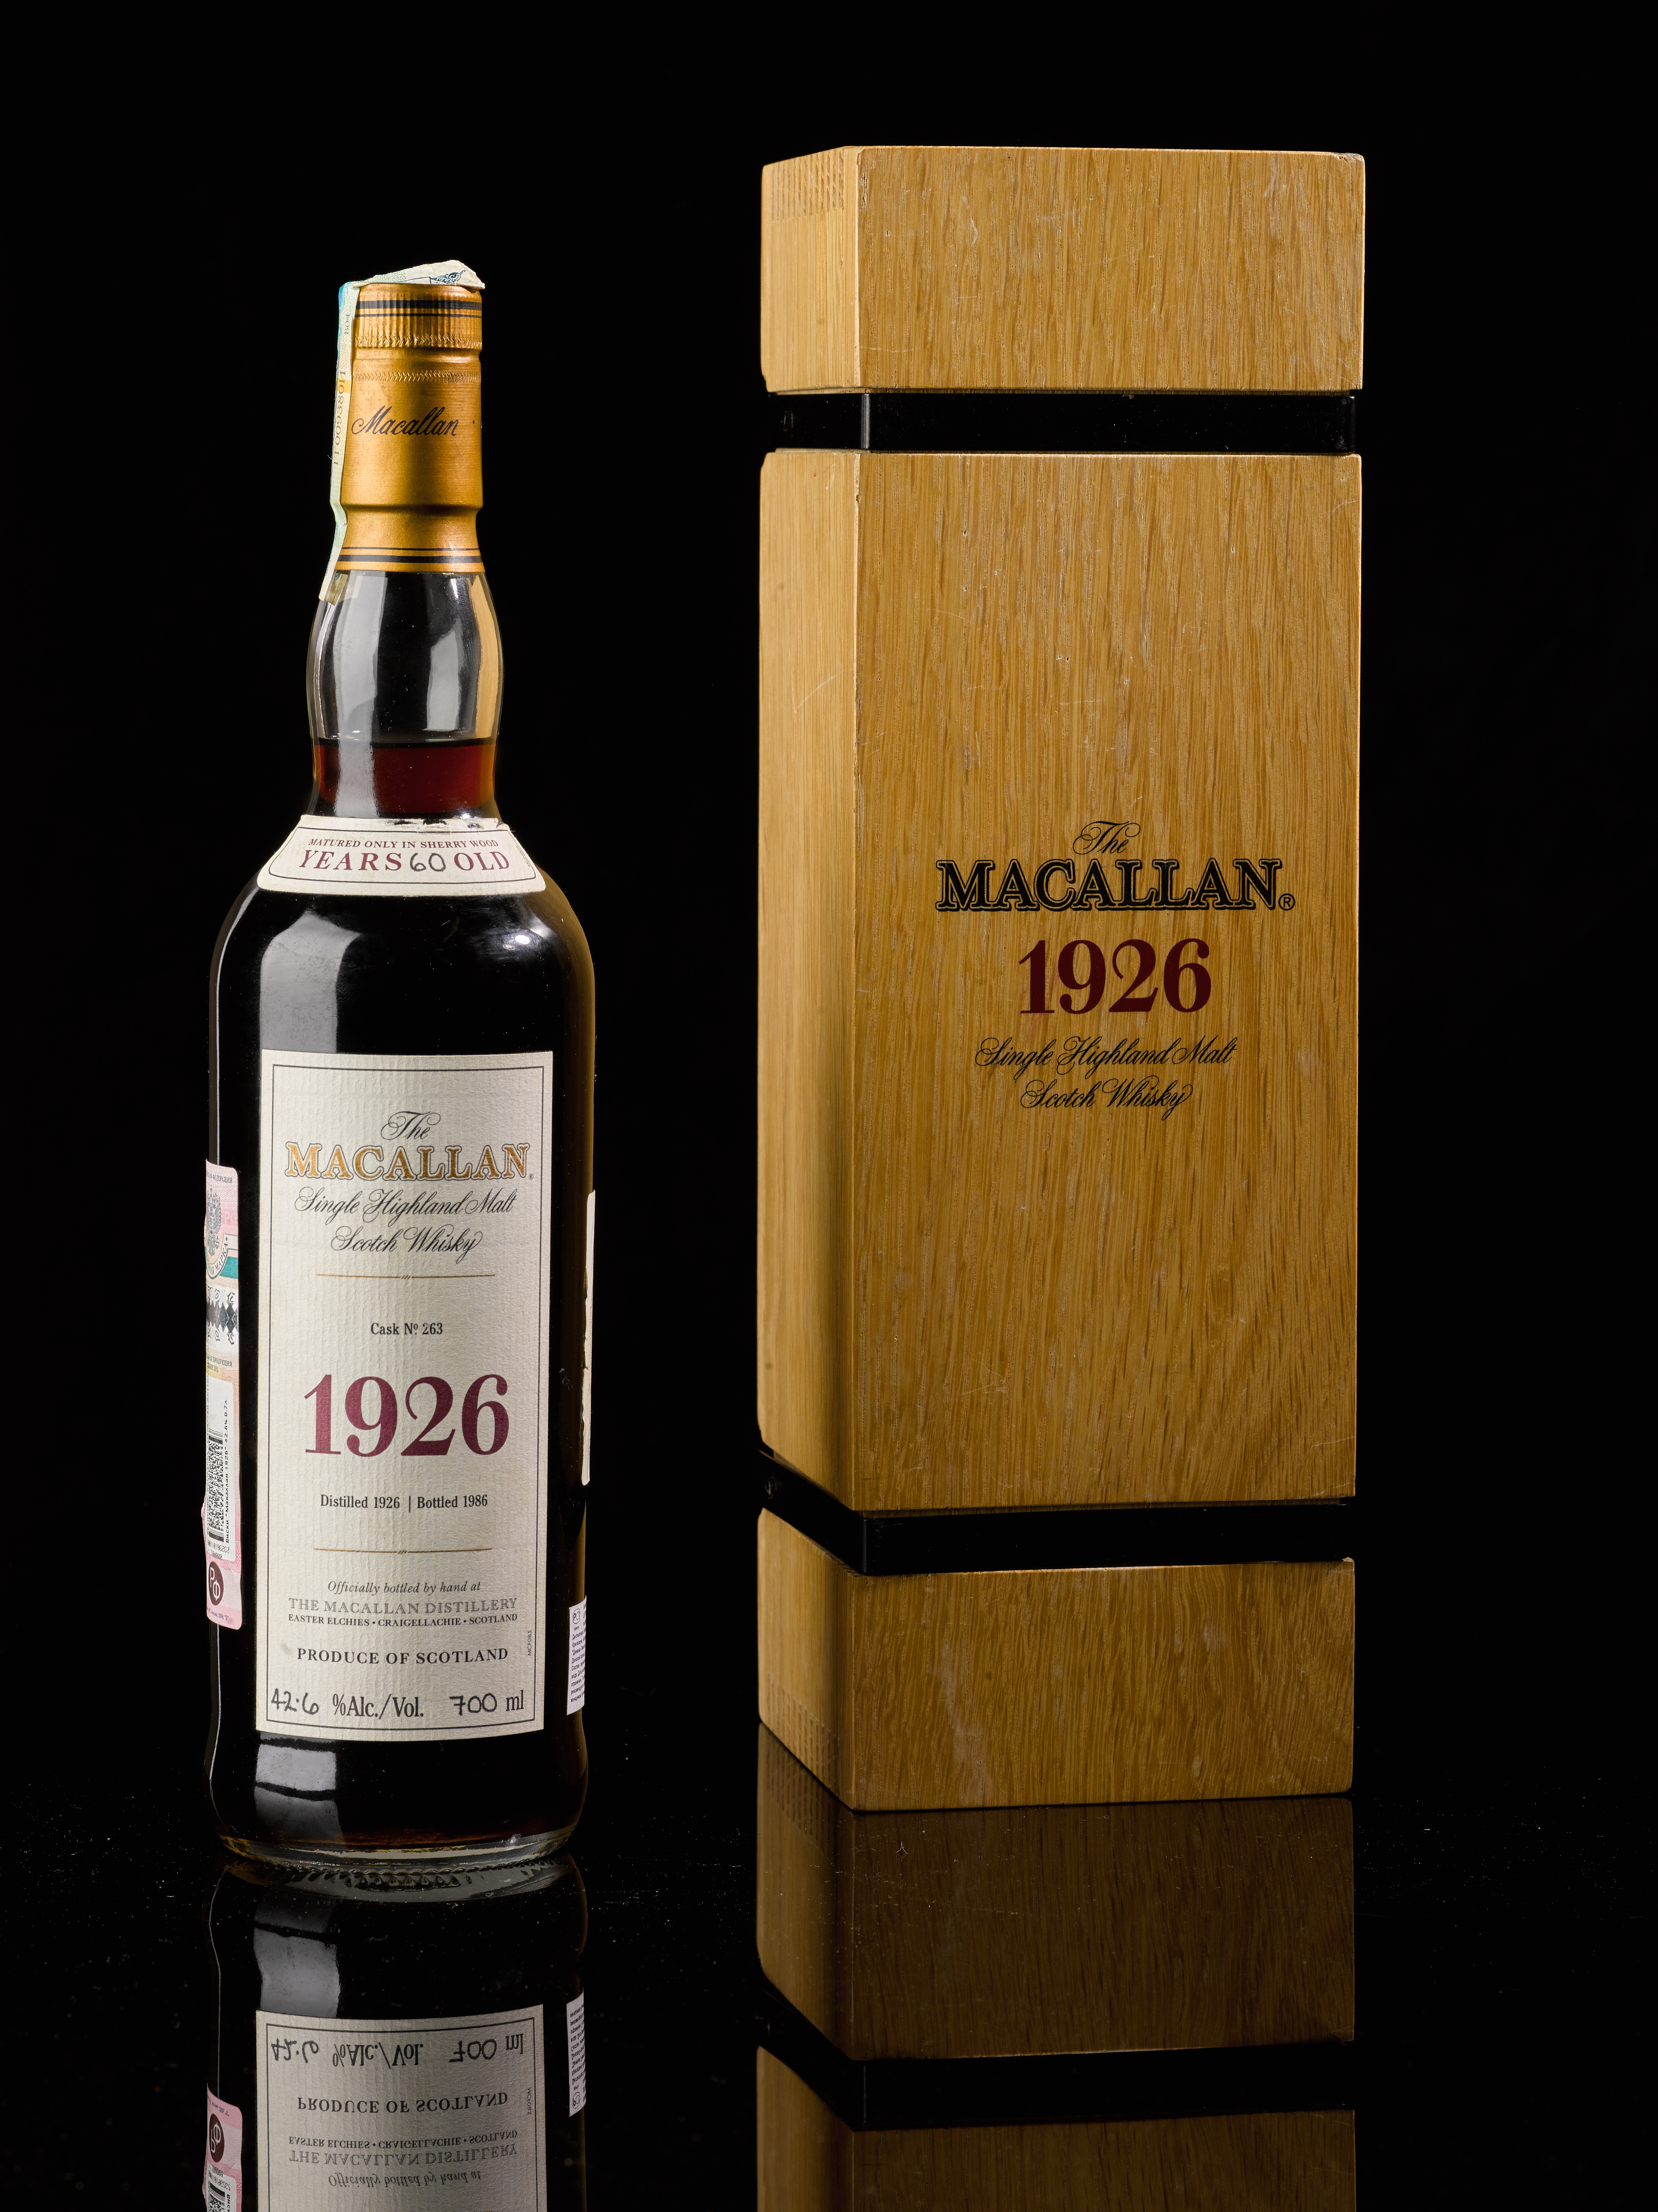 Macallan 60 years old 1926